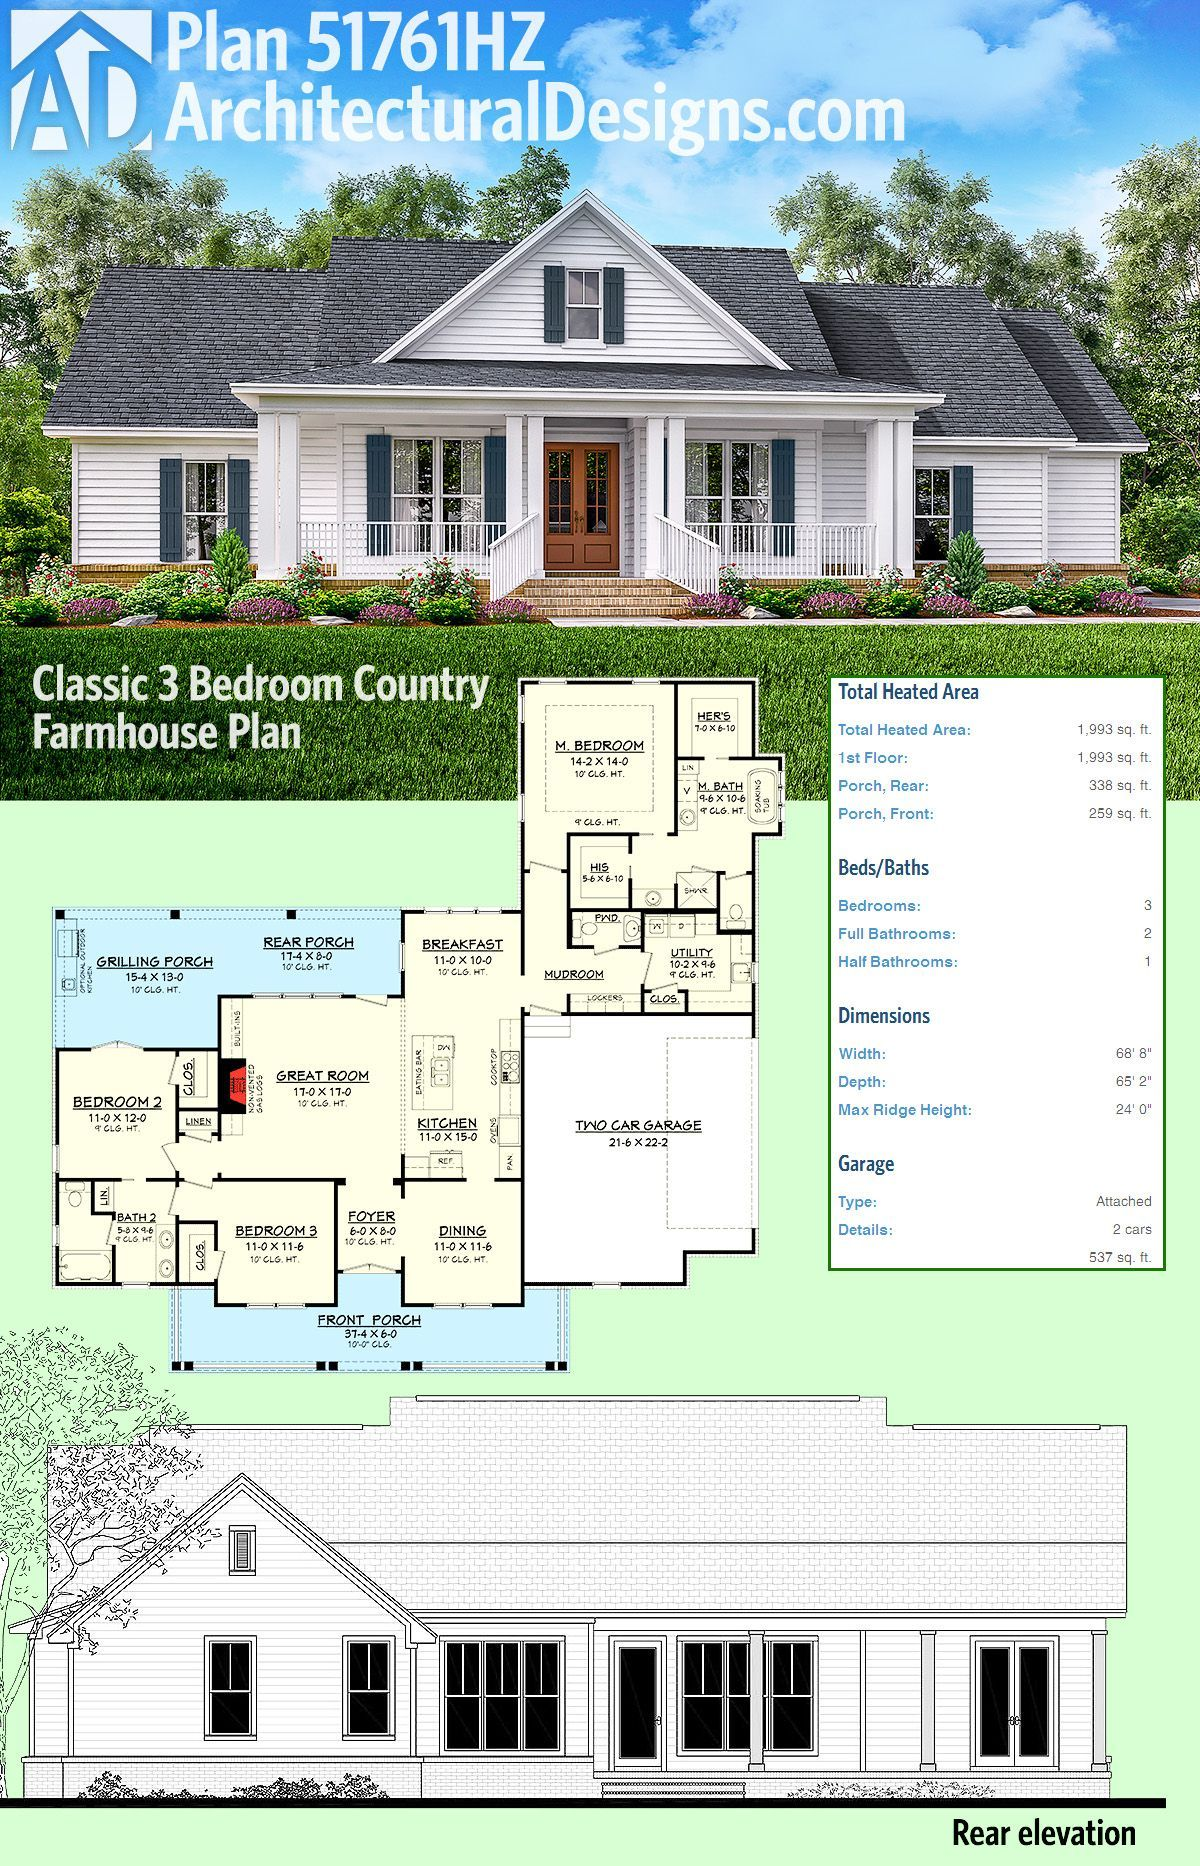 Plan hz classic bed country farmhouse plan in immo